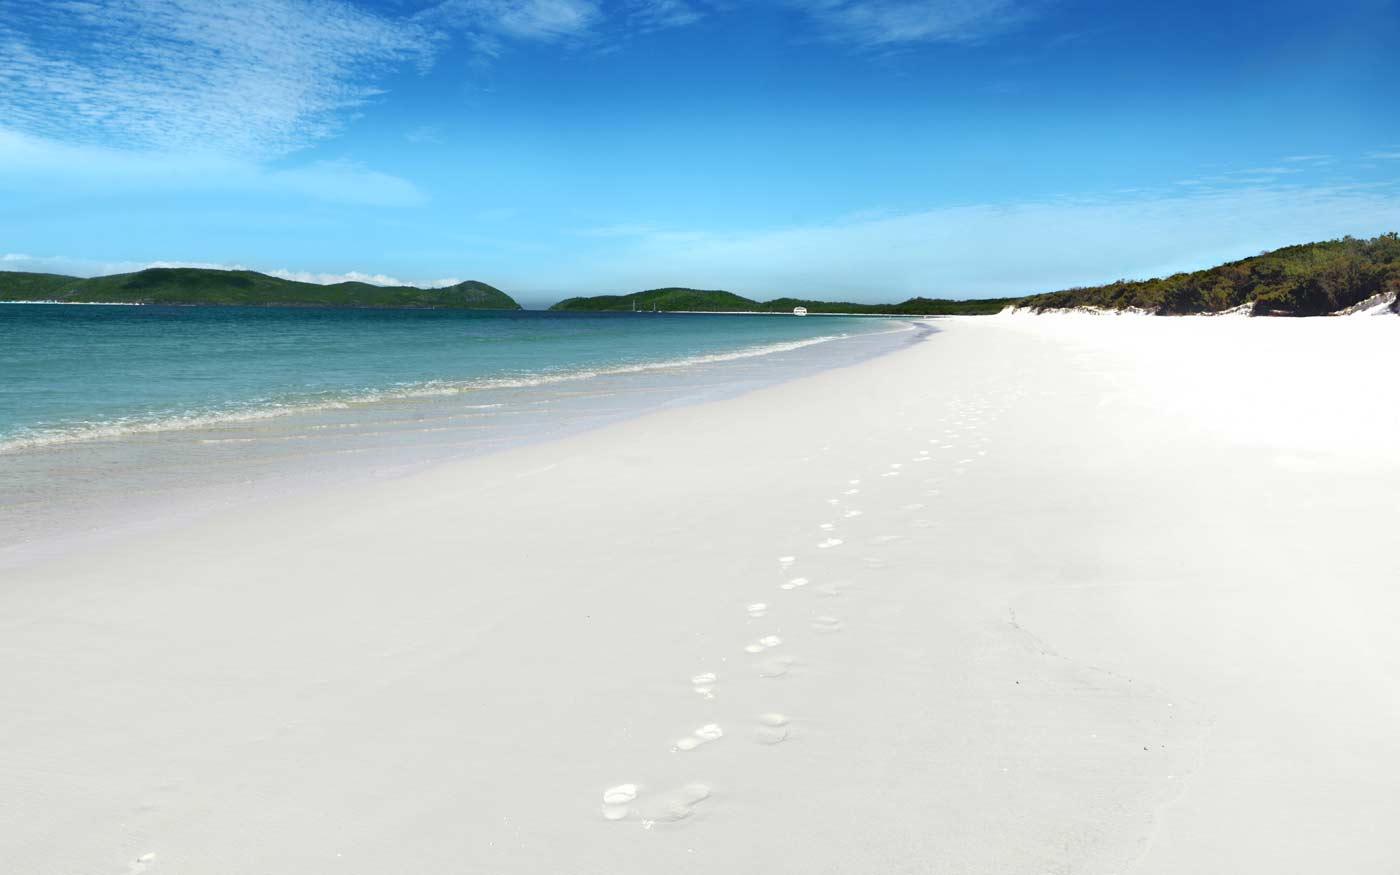 10. Whitehaven Beach, Whitsunday Island